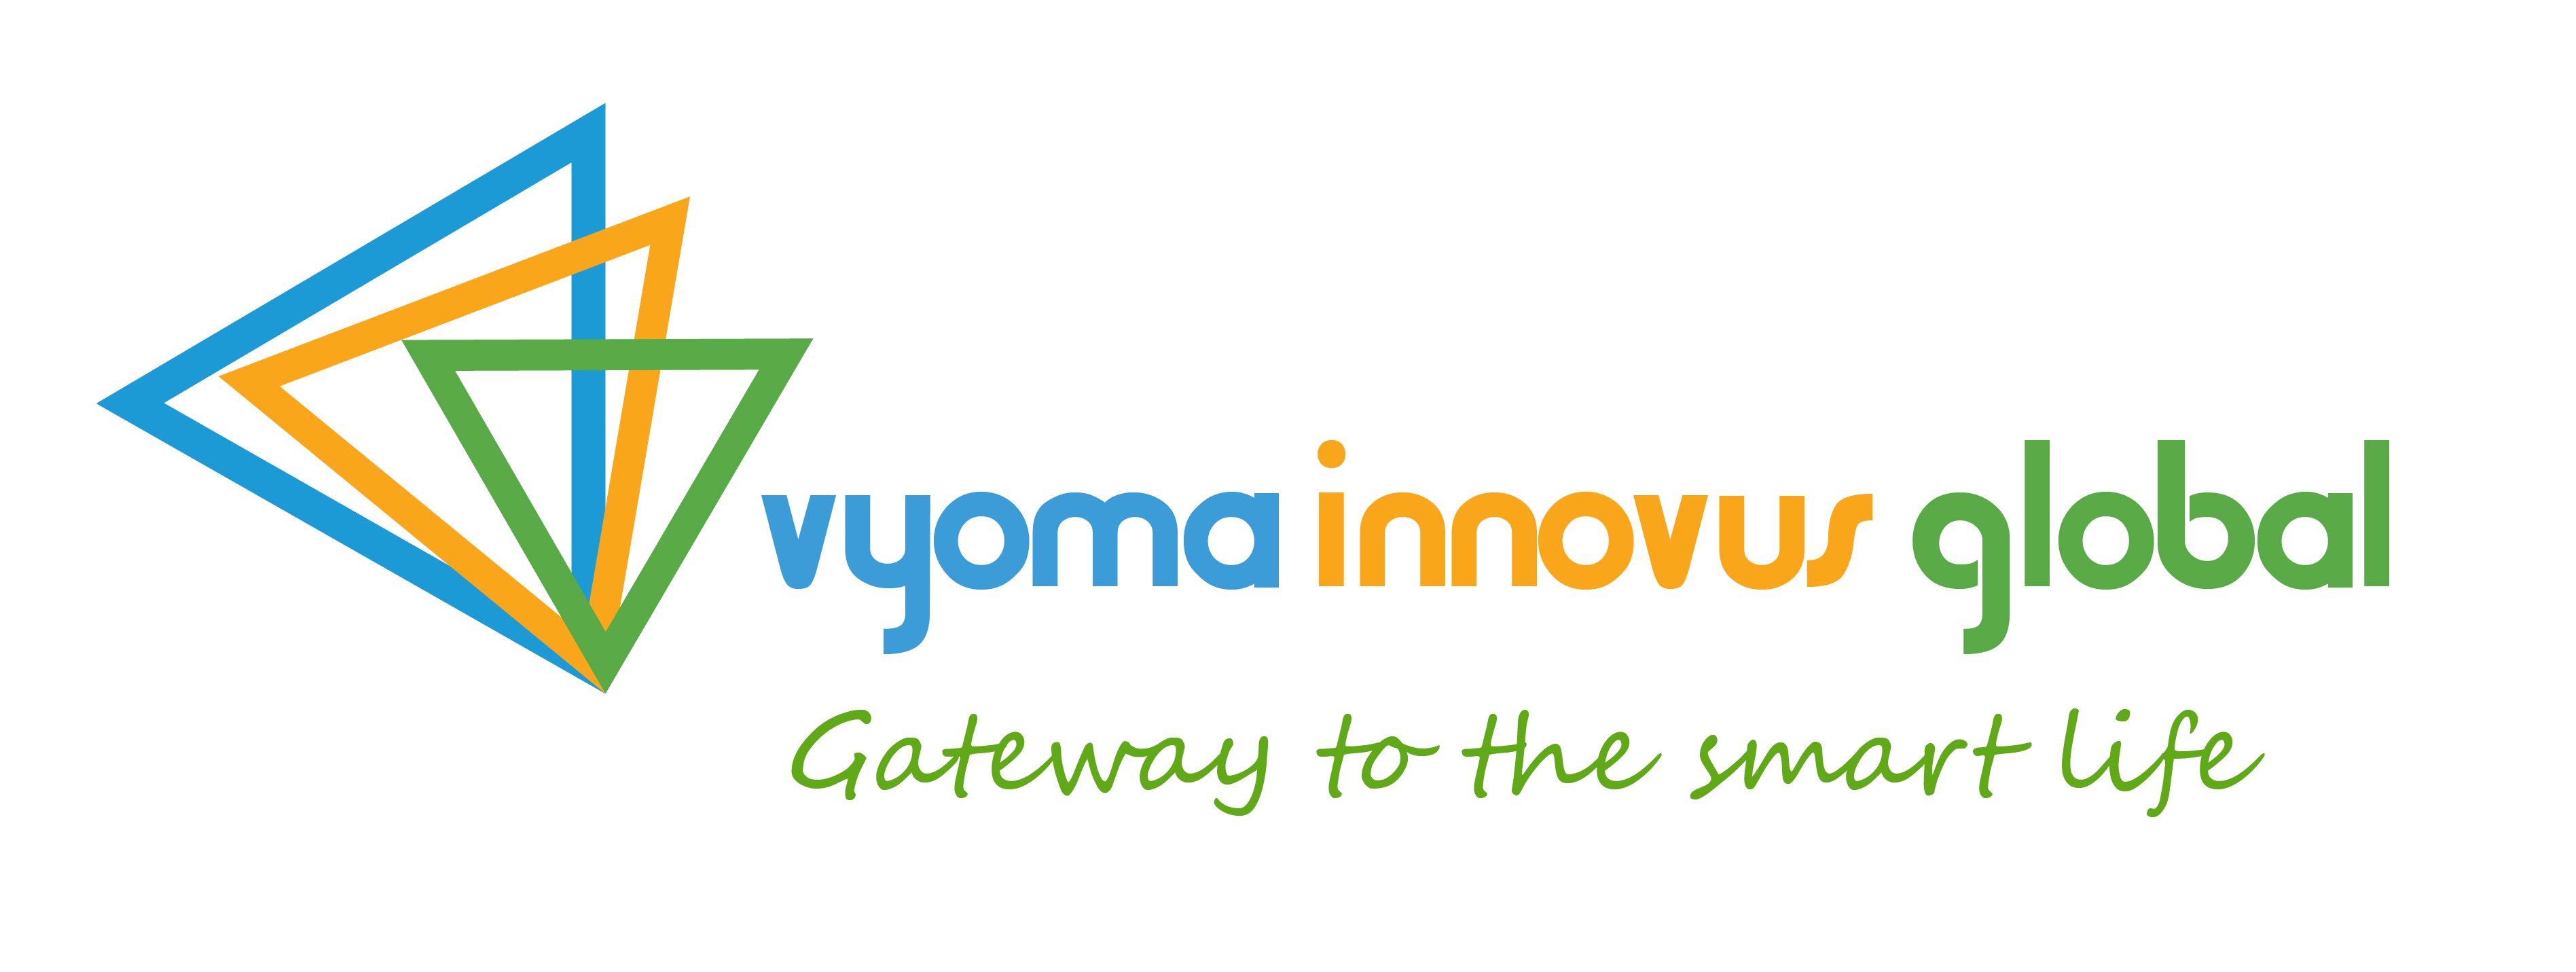 Vyoma Innovus Global